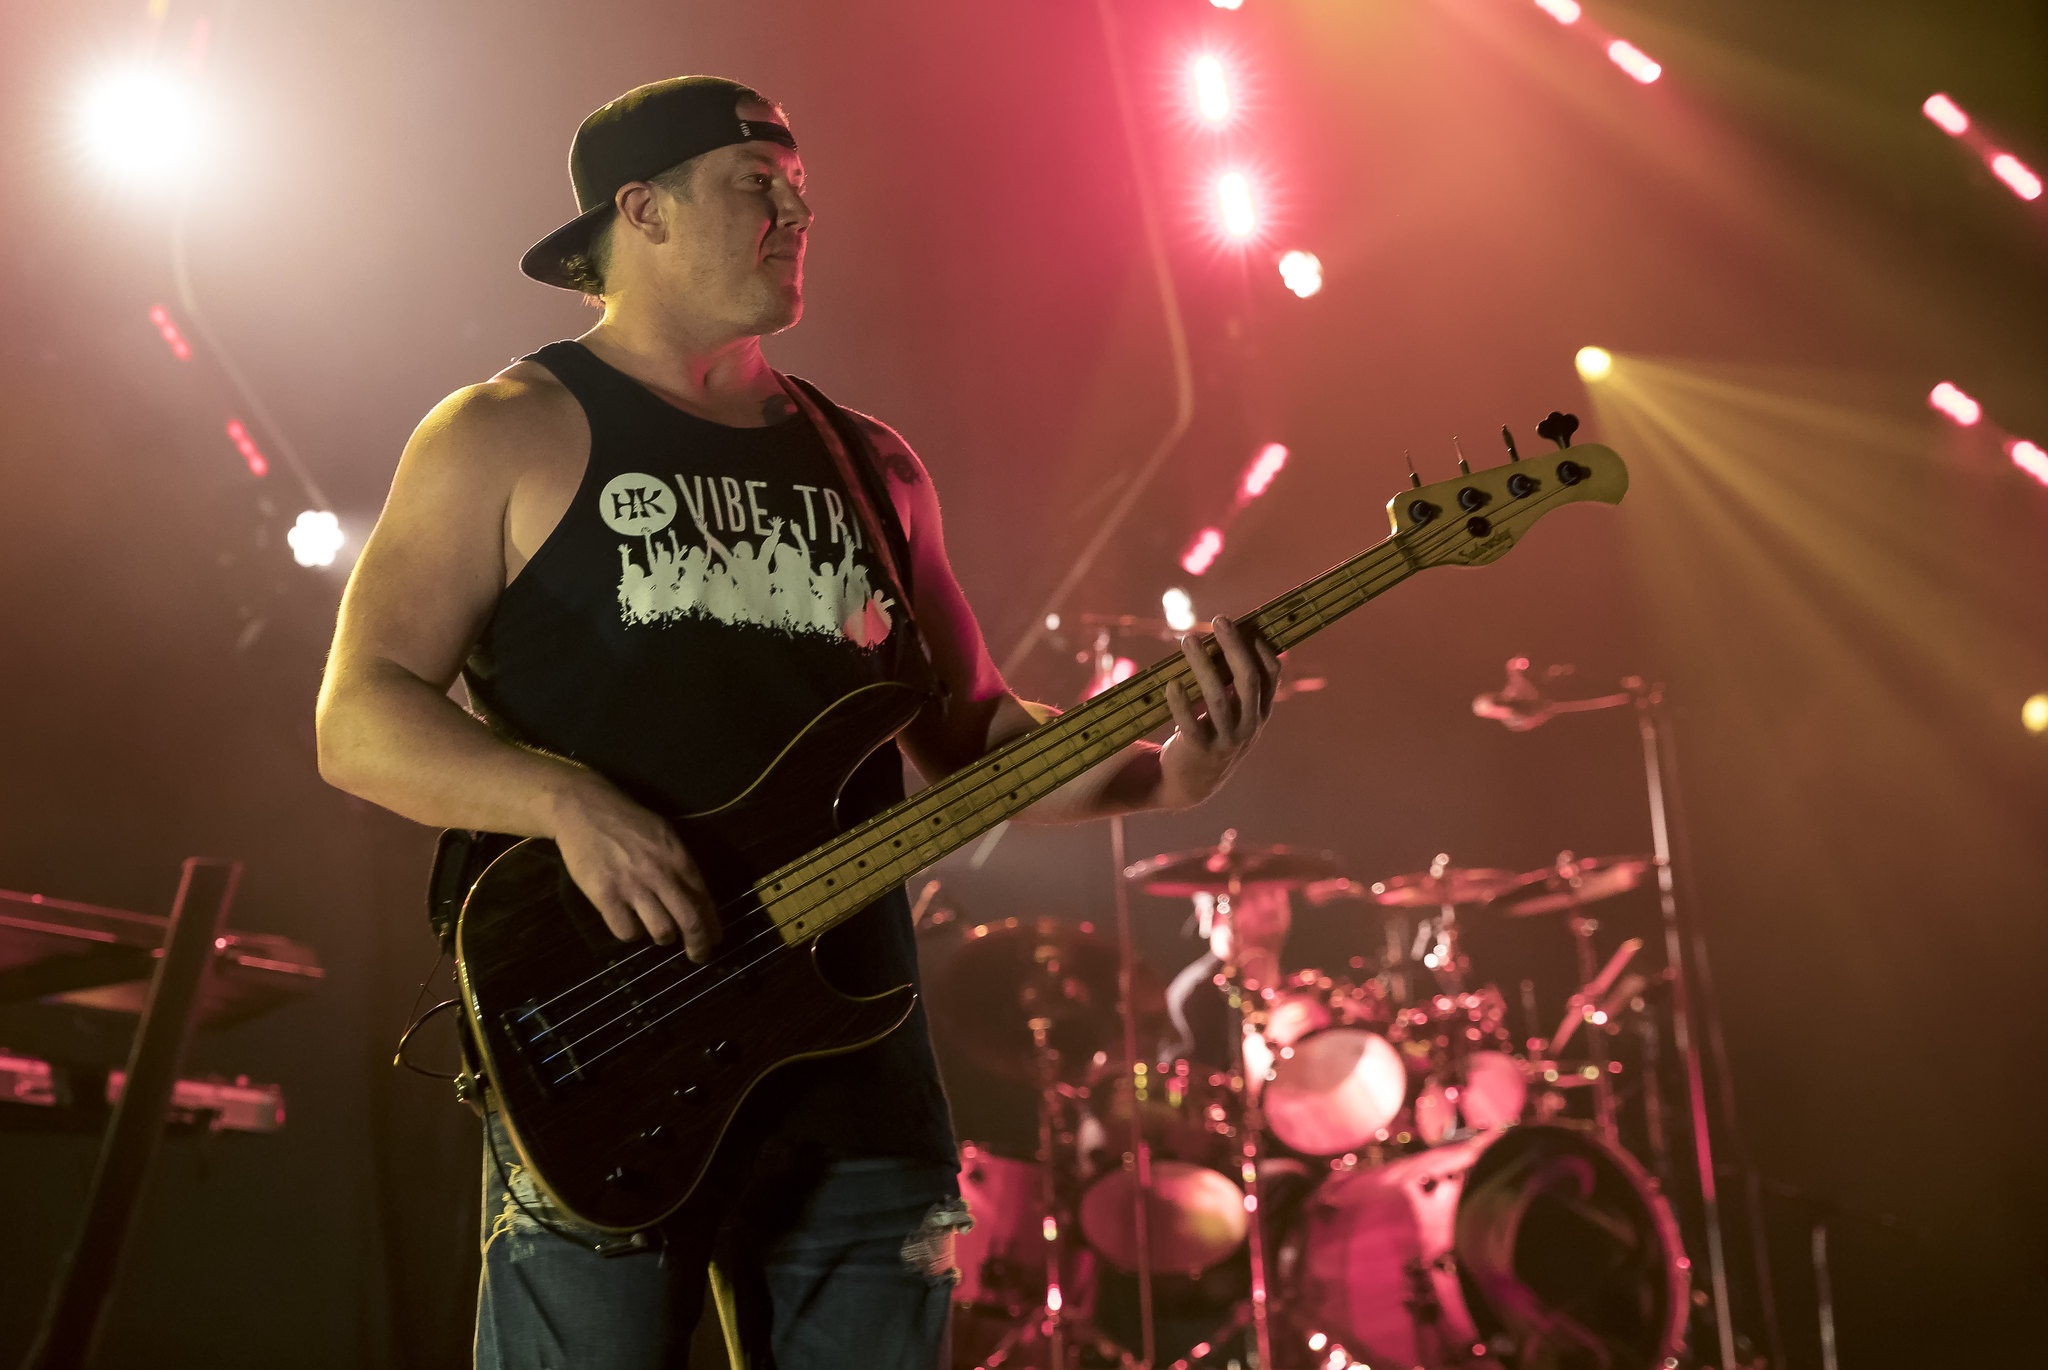 Rebelution bassist Marley D. Williams